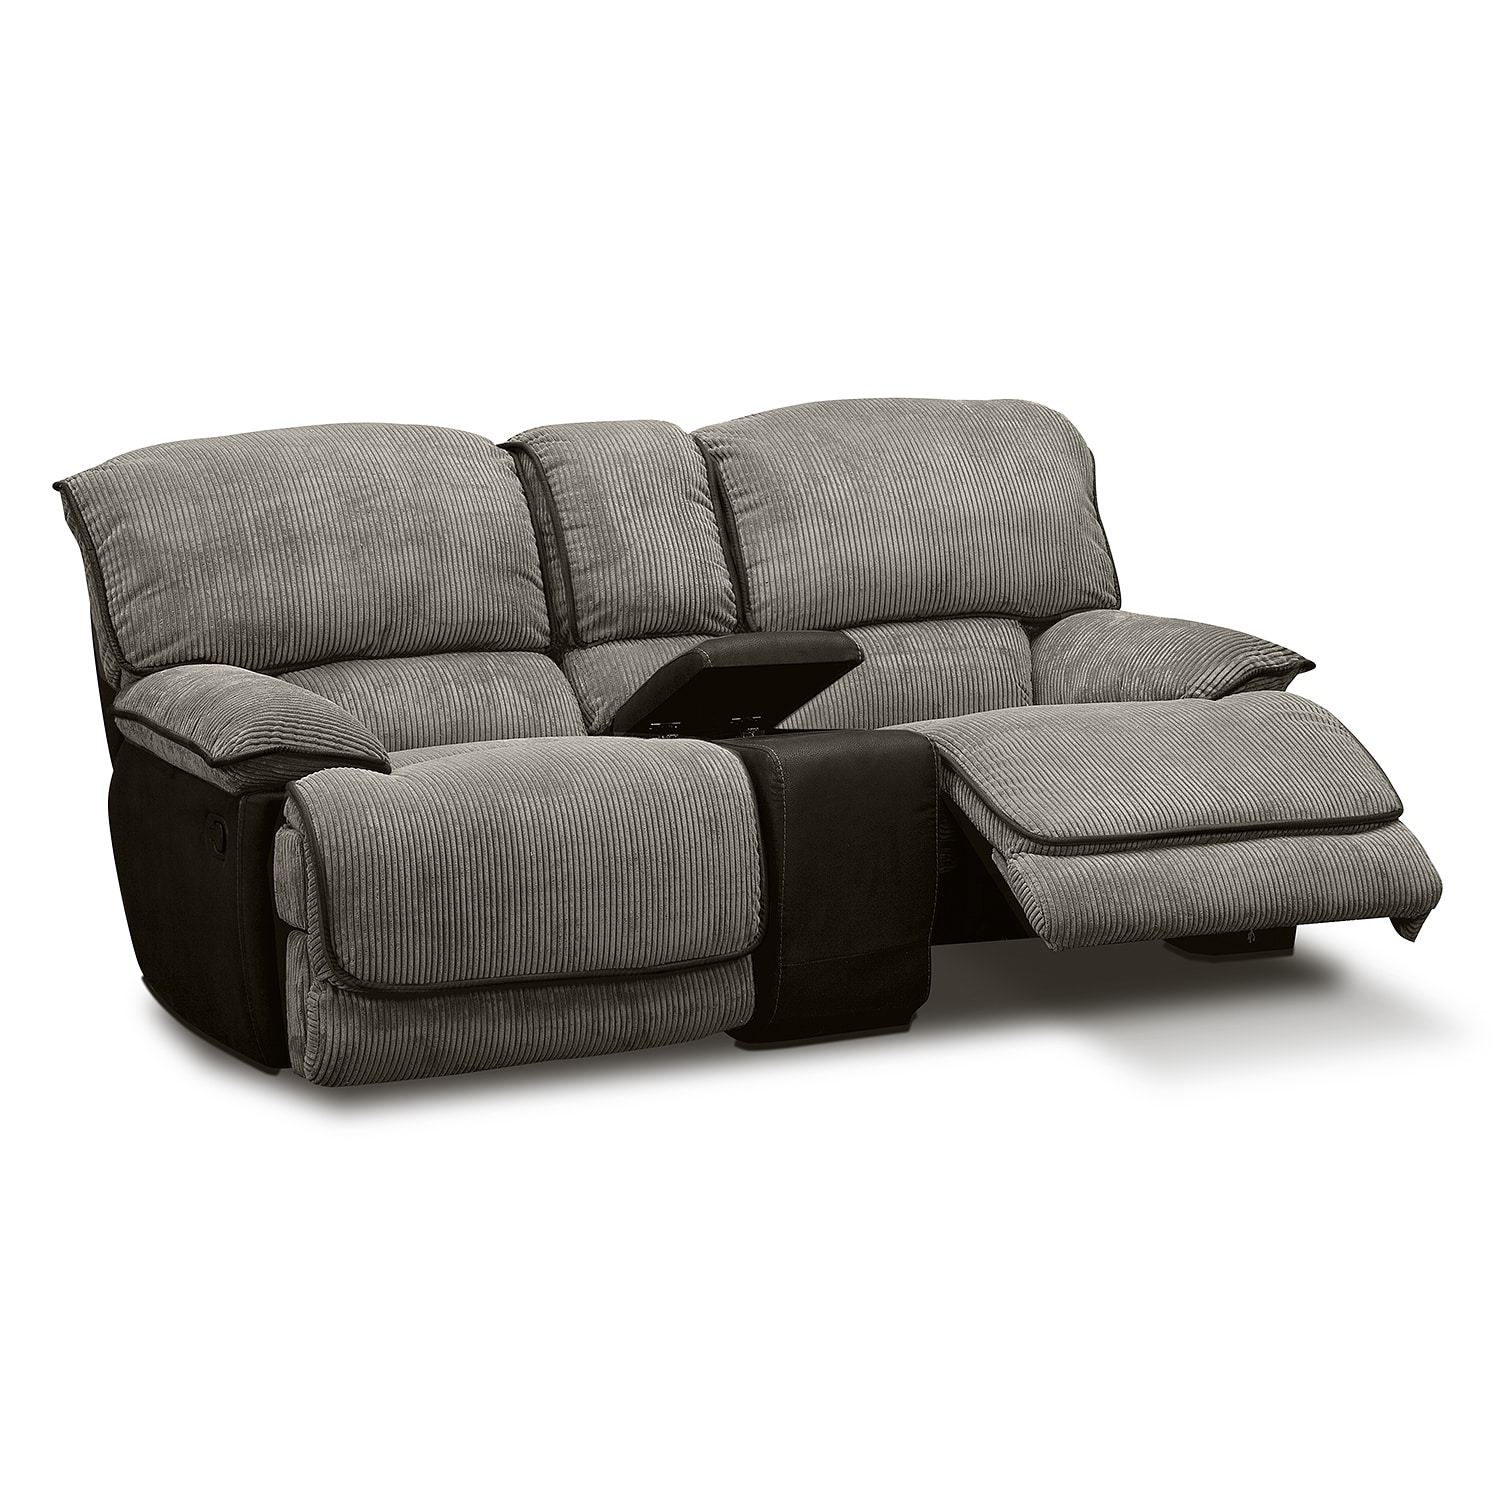 Laguna Gliding Reclining Loveseat Steel American Signature Furniture